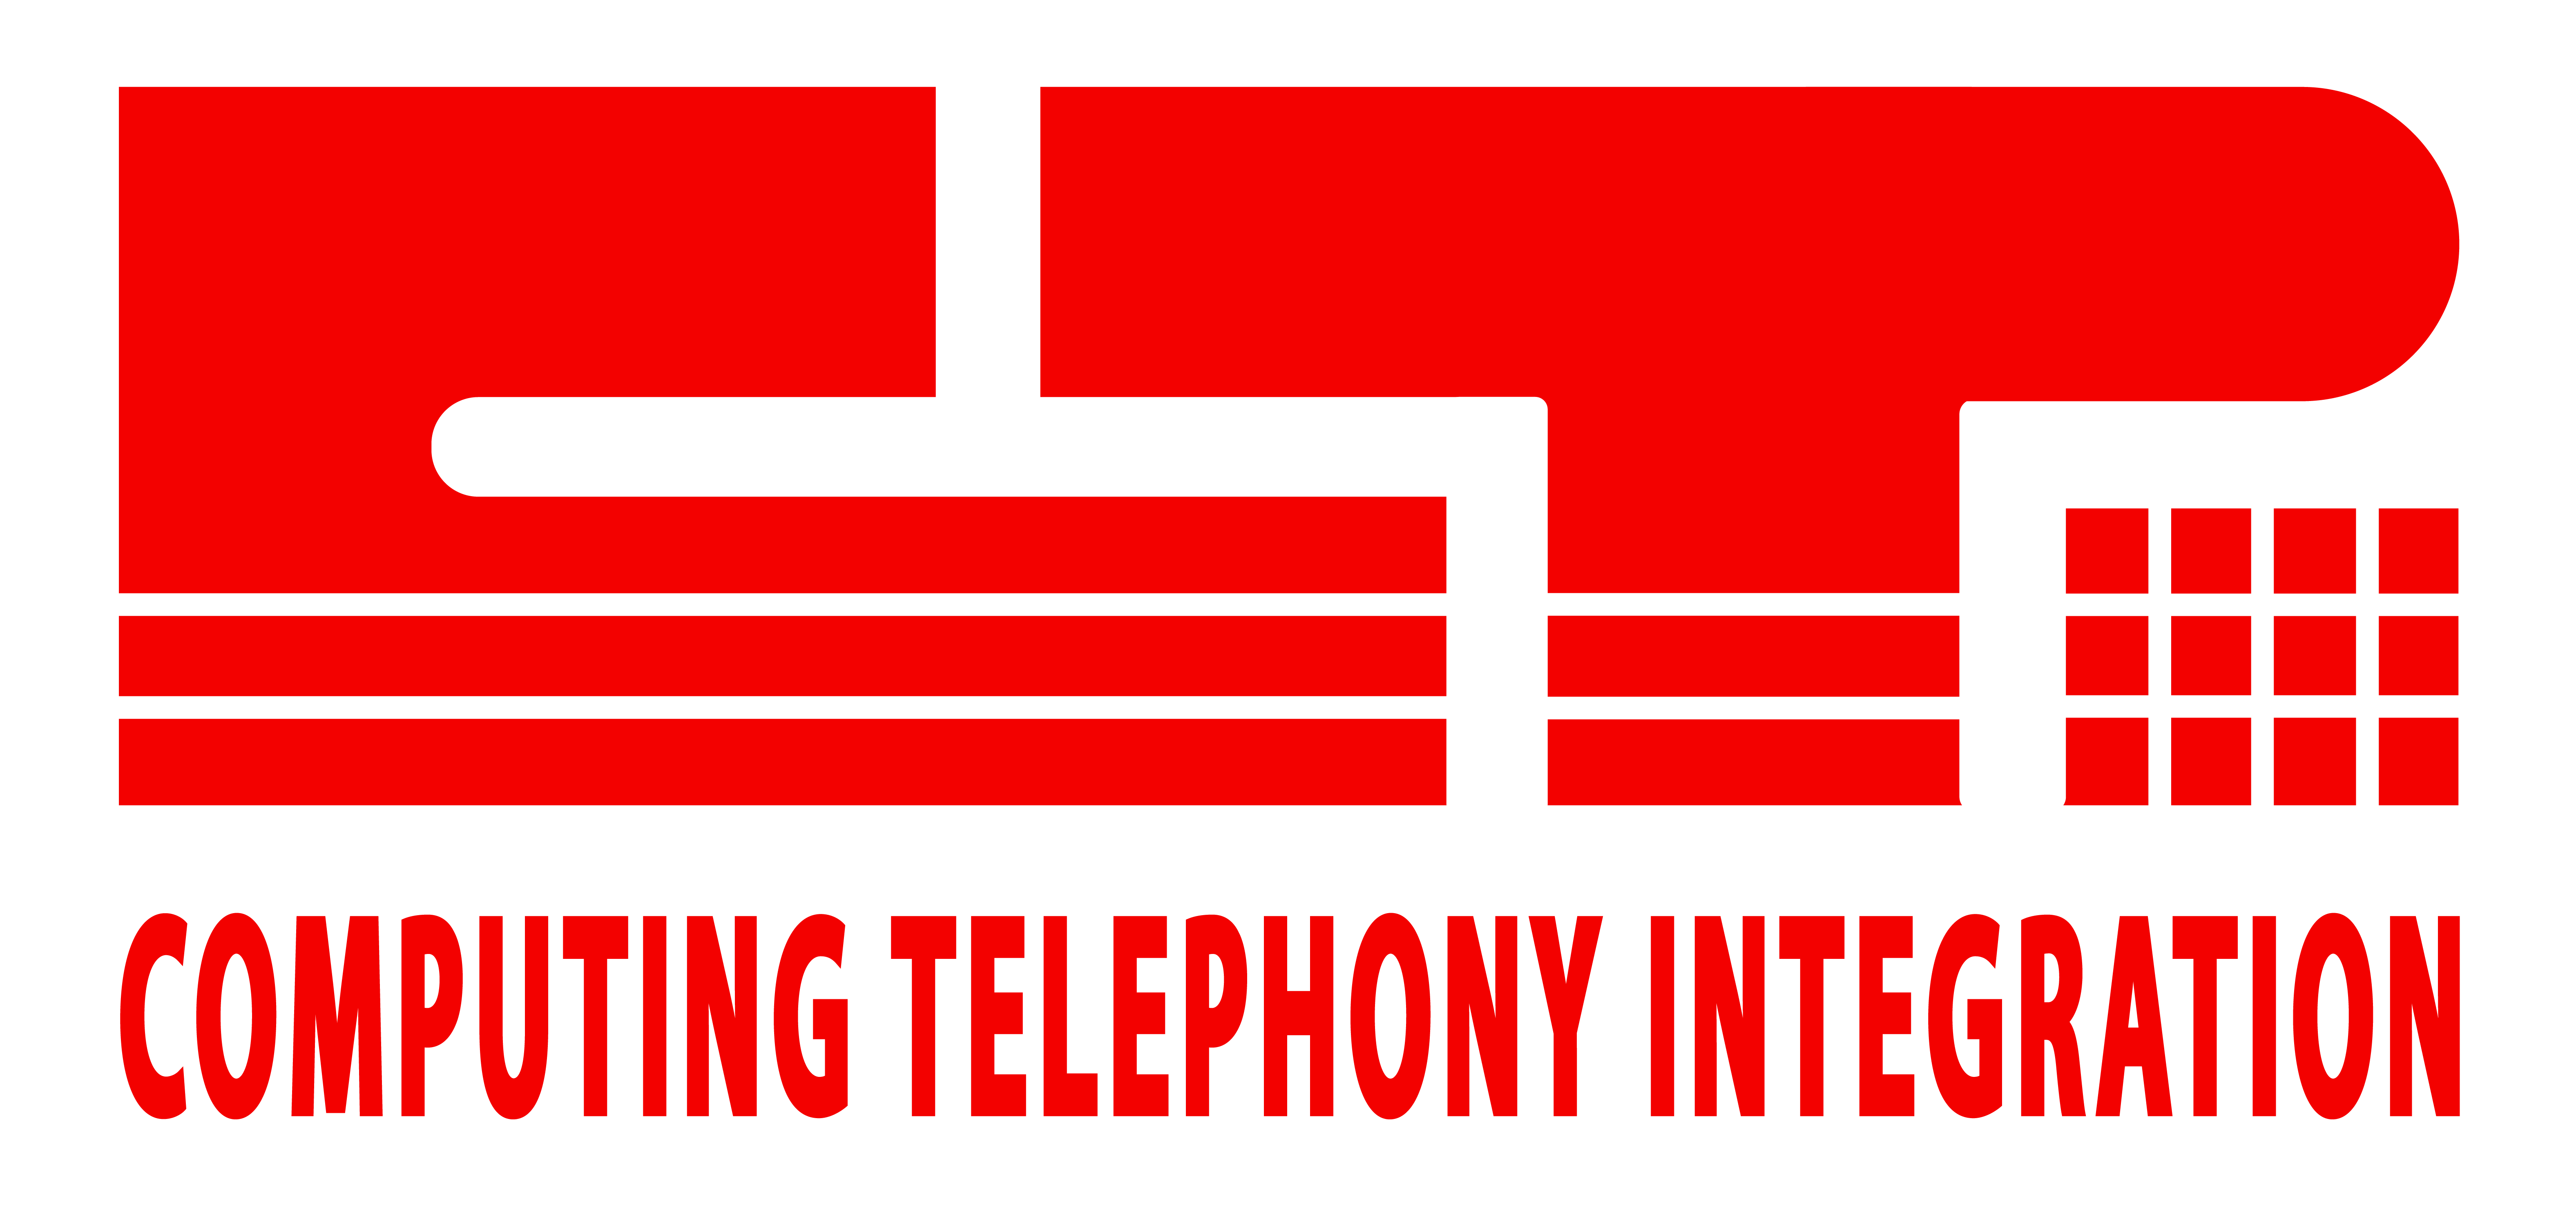 Computing Telephony Integrations